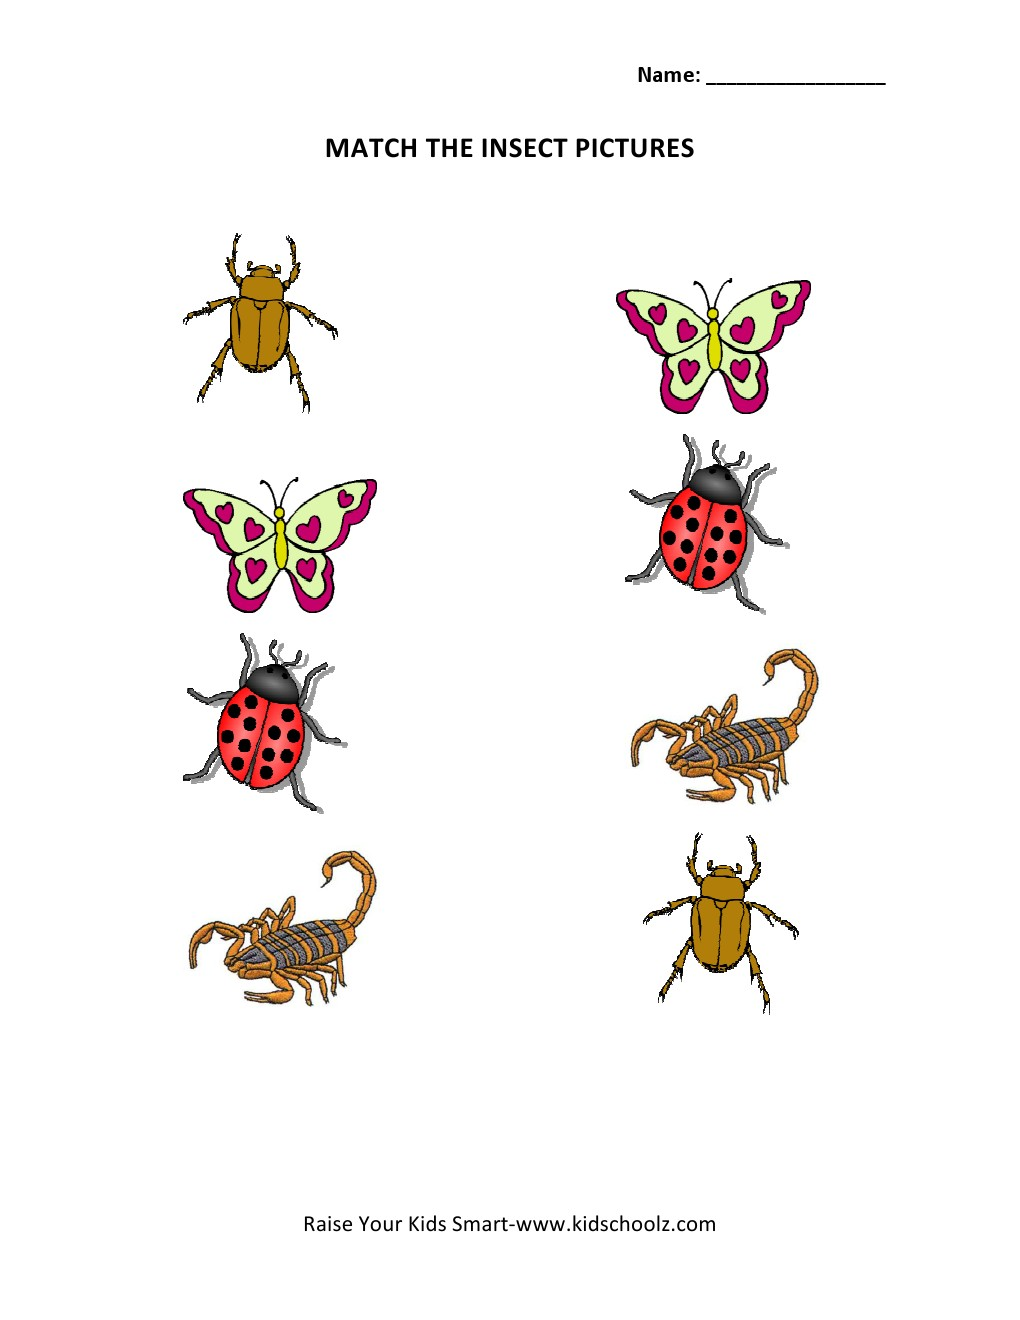 math worksheet : insect worksheets for kindergarten : Insects Worksheets For Kindergarten